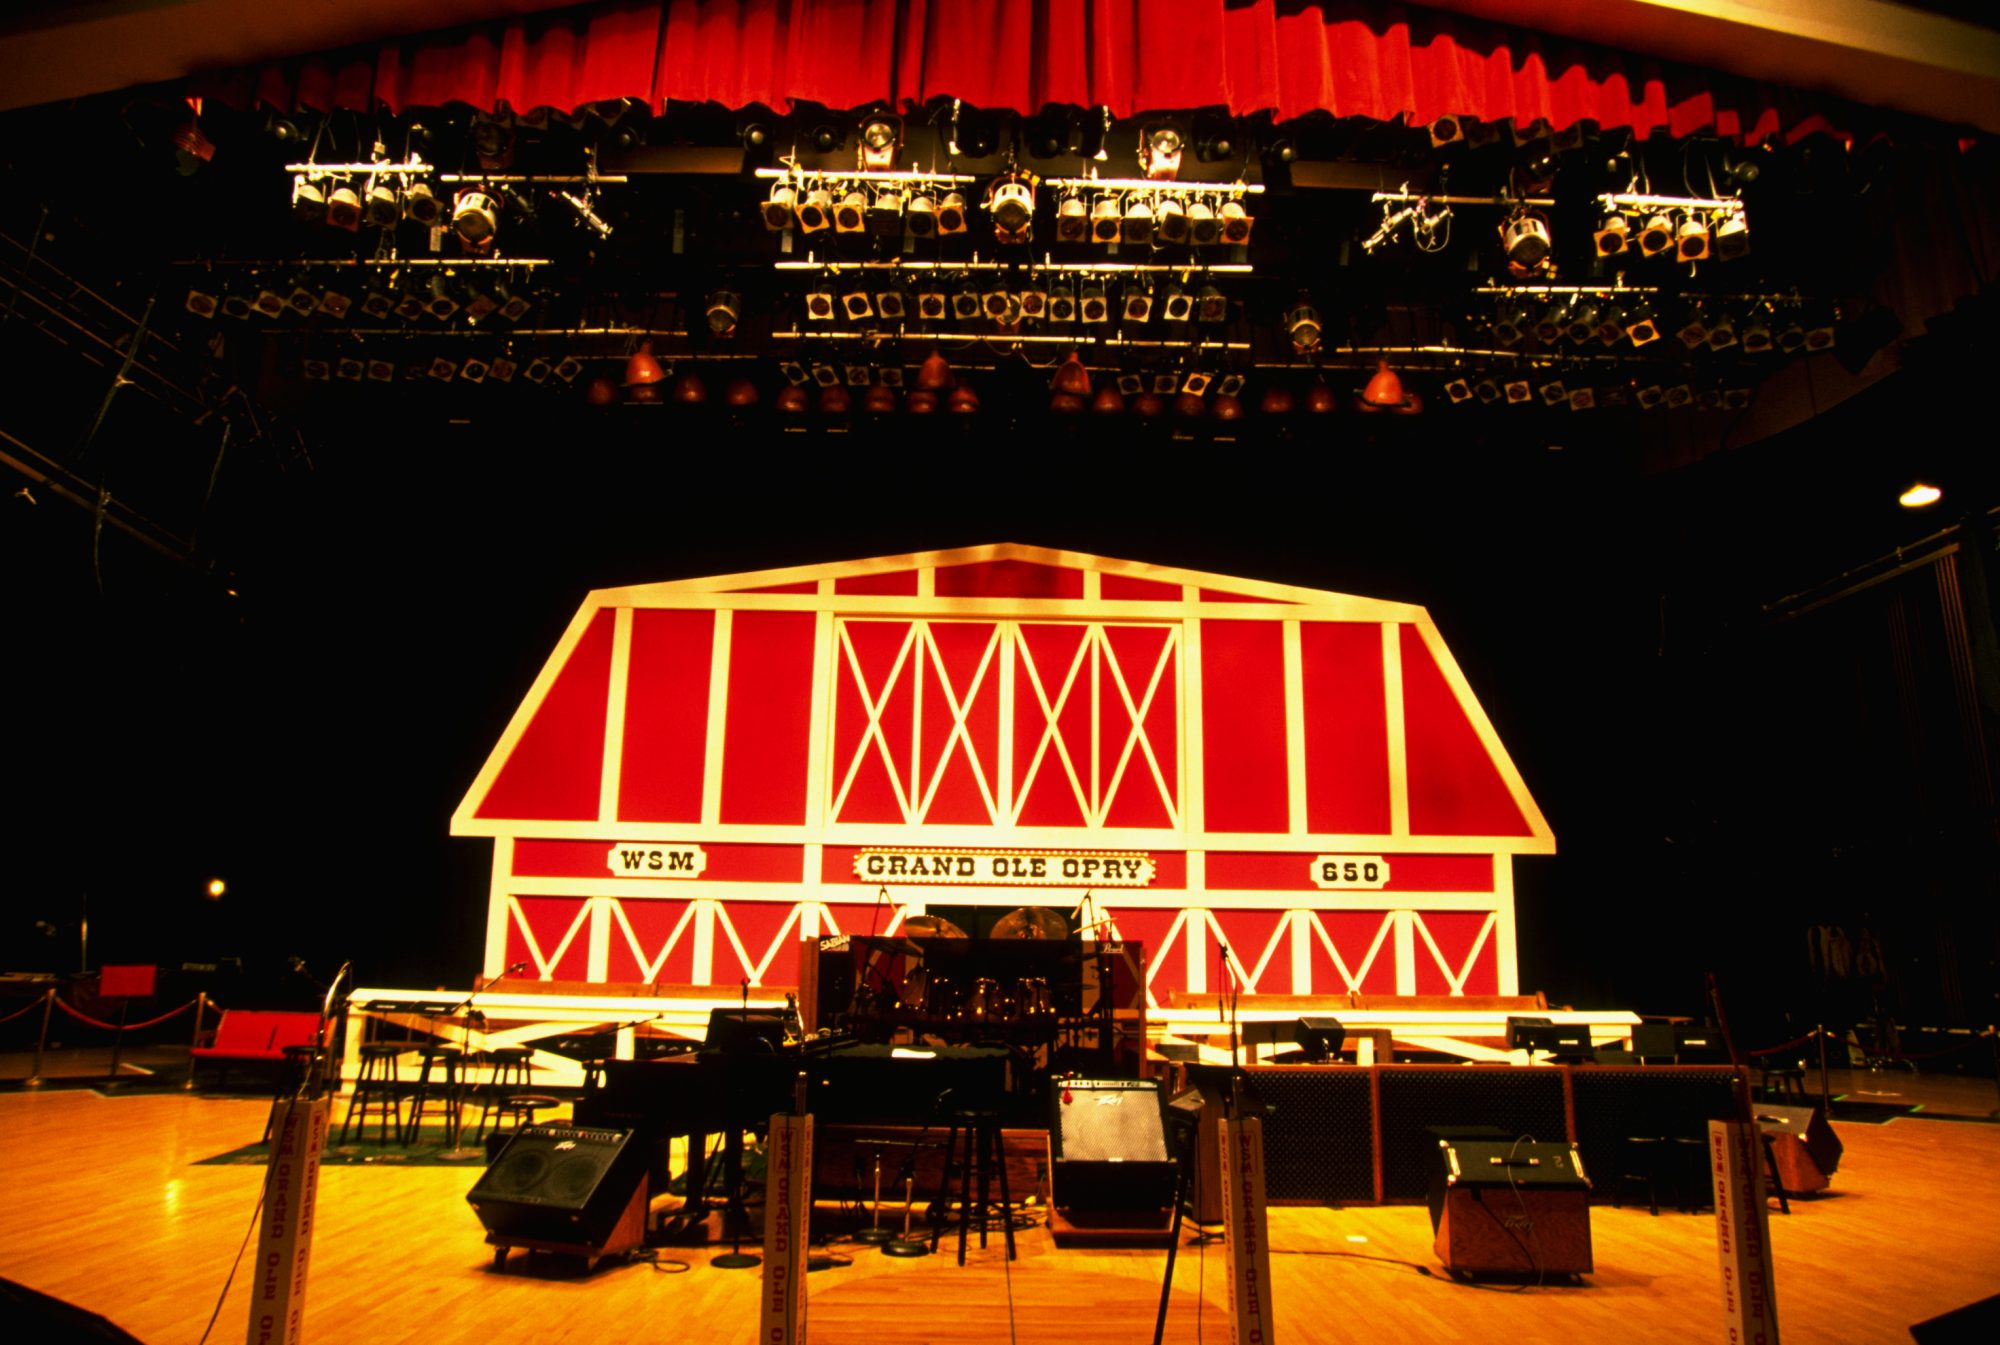 Grand Ole Opry Christmas 2020 Show Grand Ole Opry Live TV Show Circle Media | Southern Living